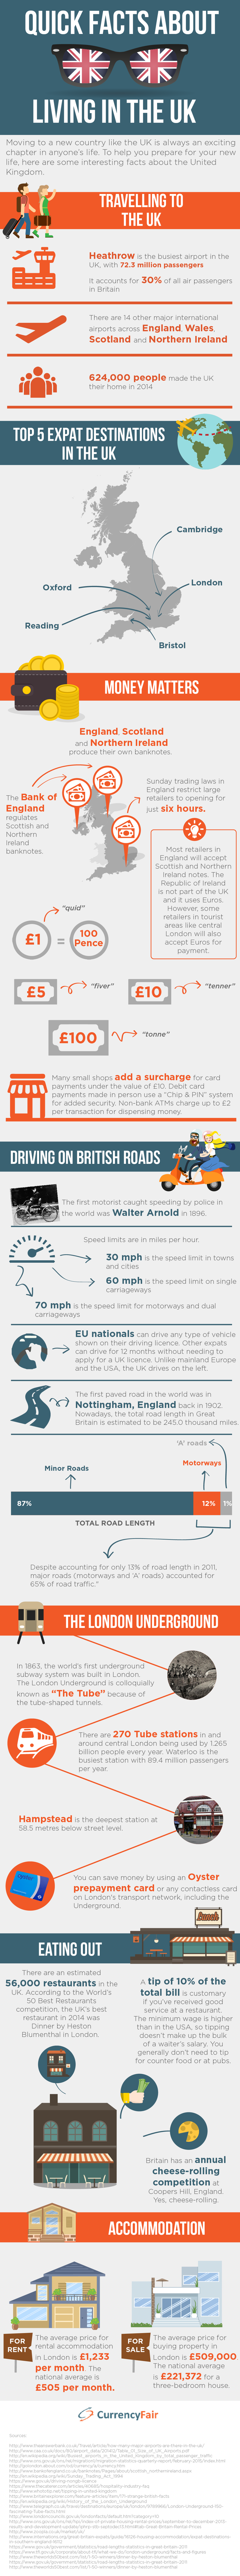 UK Interesting Facts Infographic